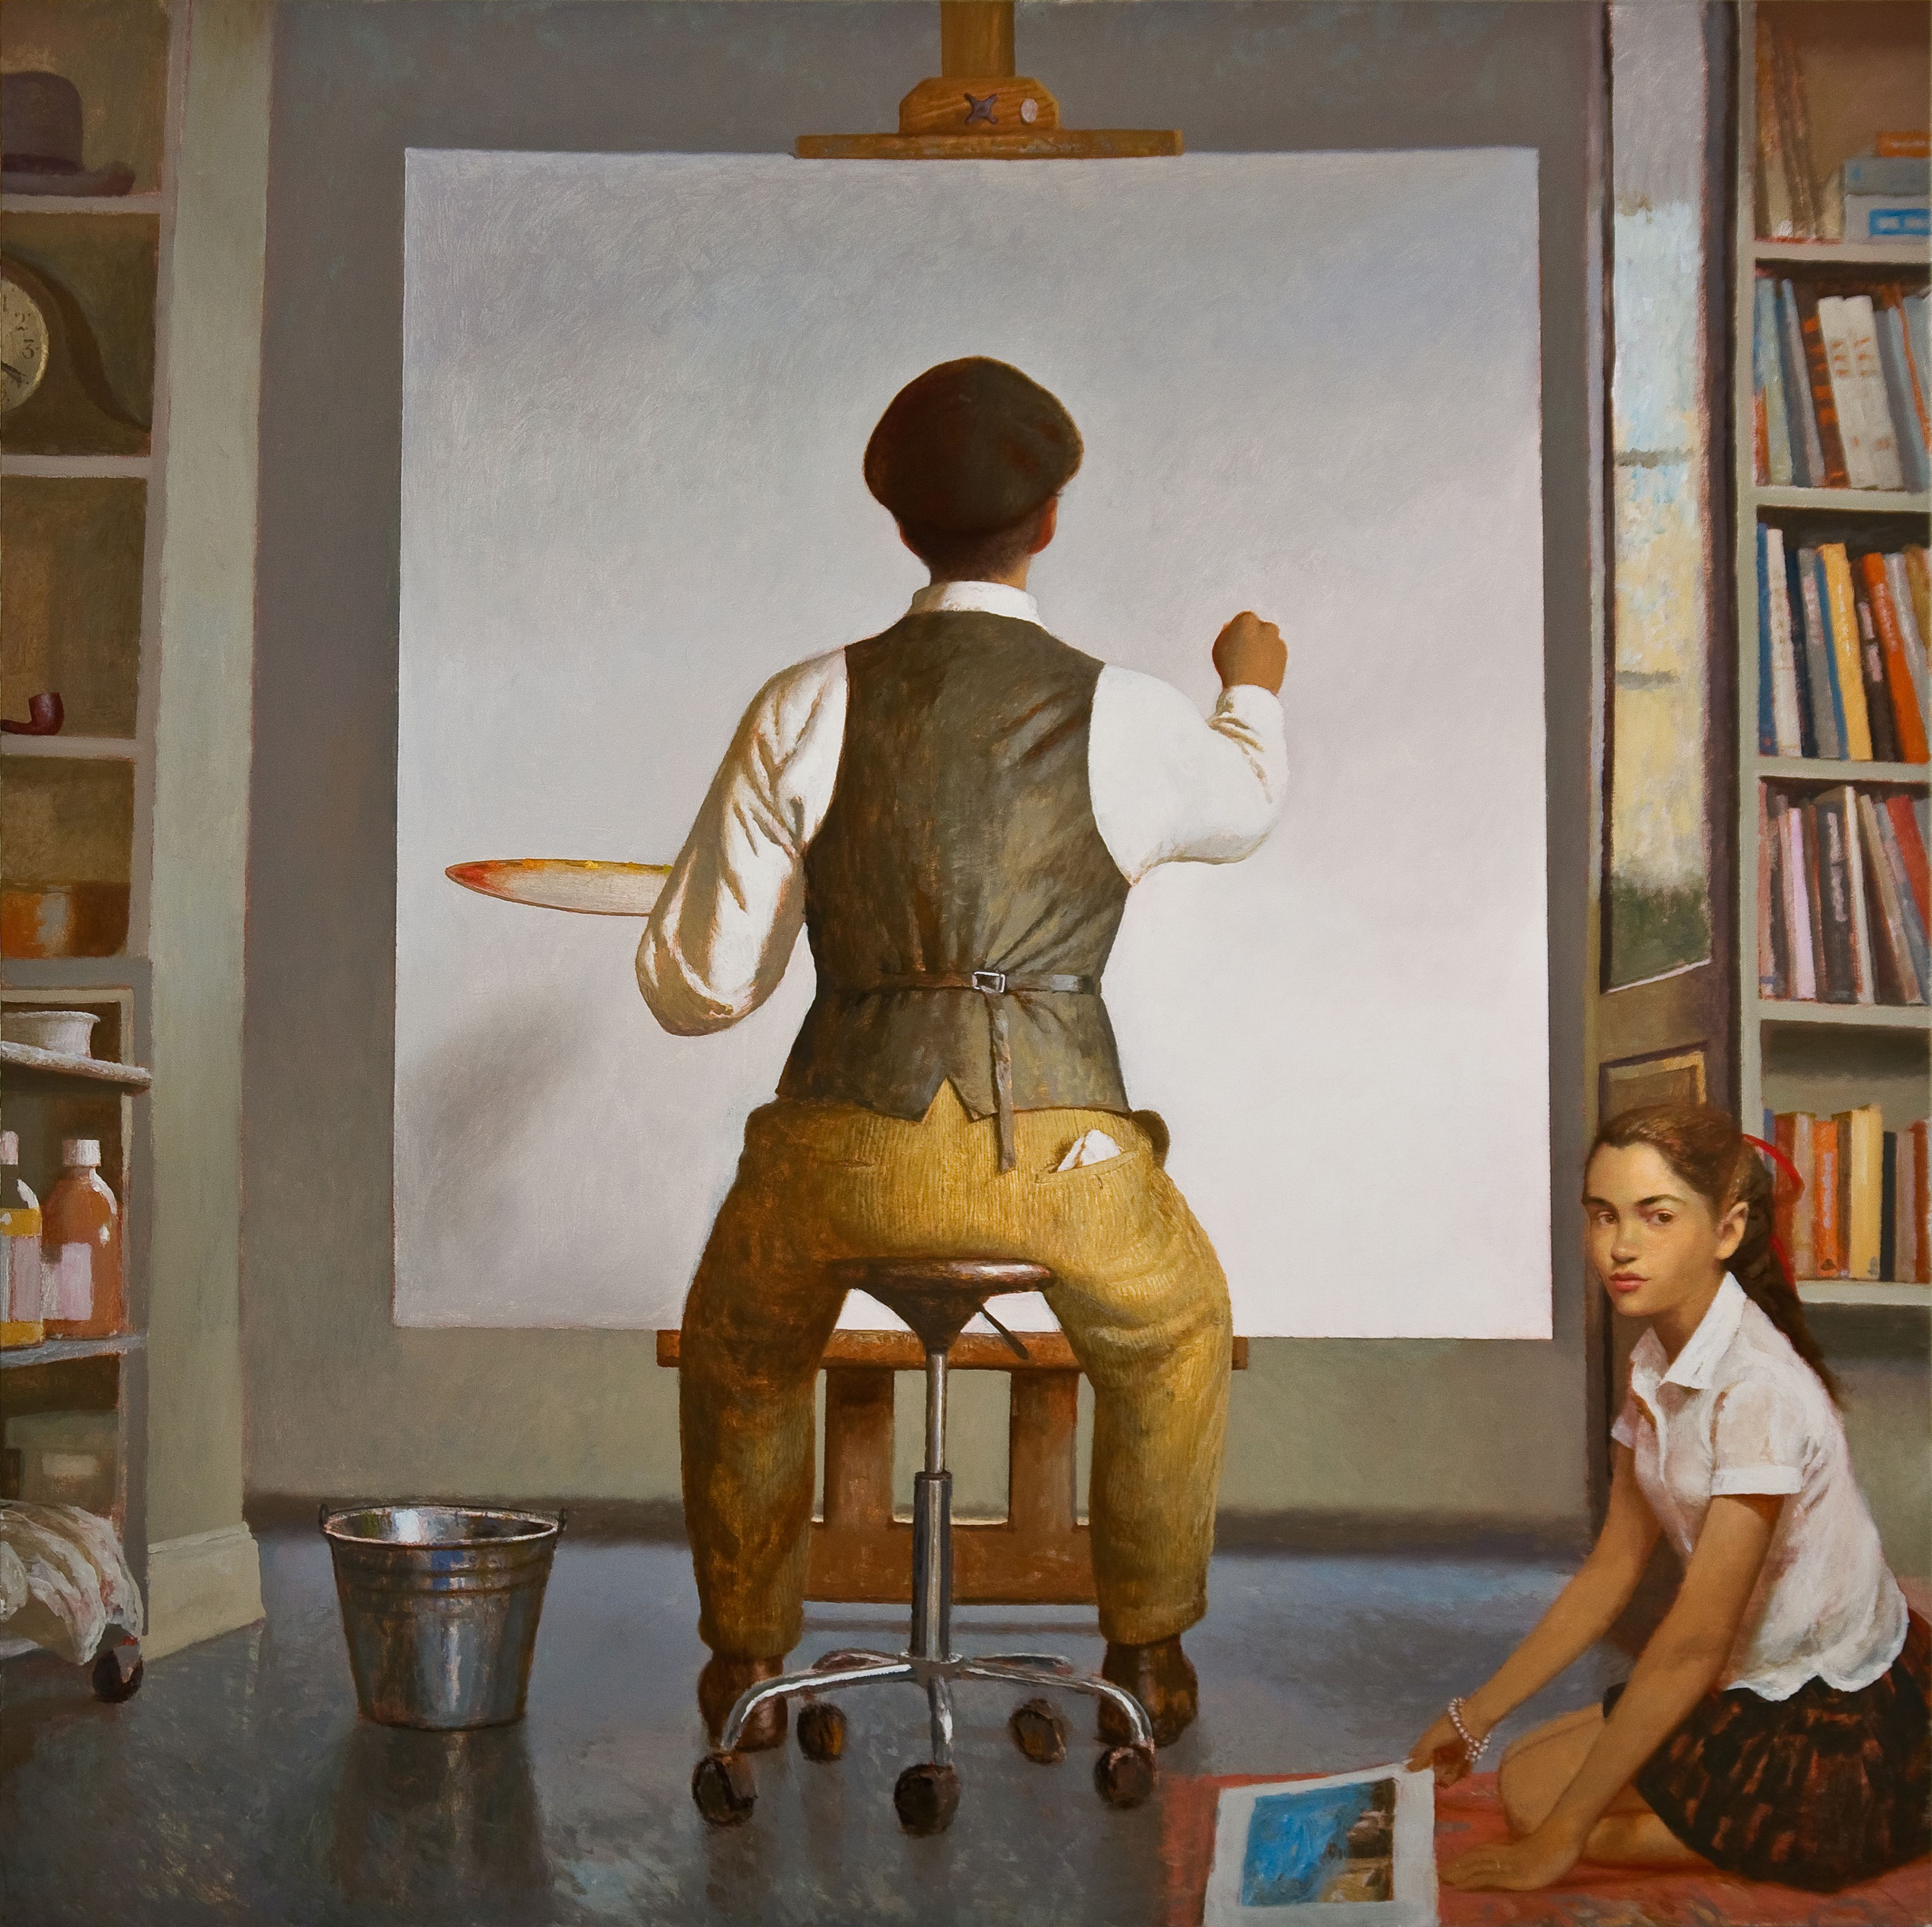 Bo Bartlett, A New Beginning (SOLD), 2008, oil on linen, 60 x 60 inches